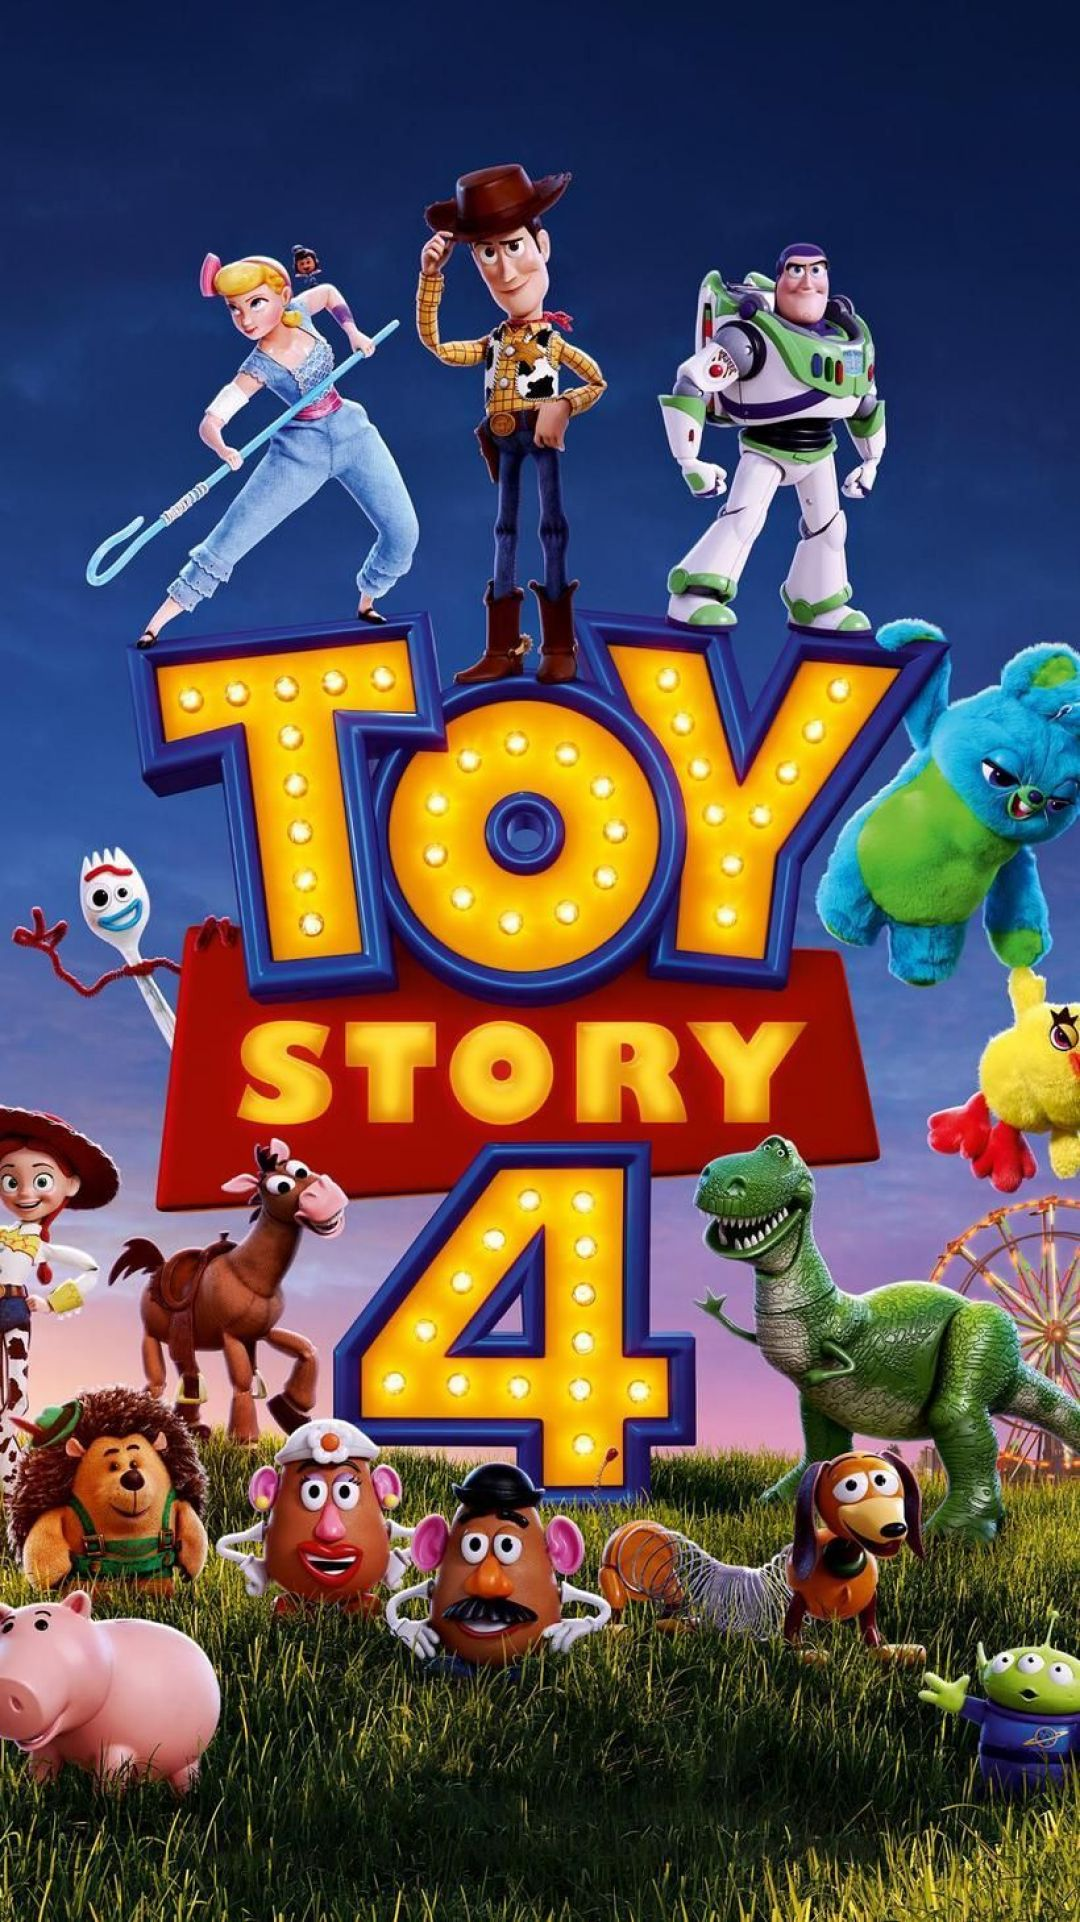 Toy Story 4 - Android, iPhone, Desktop HD Backgrounds / Wallpapers (1080p, 4k) (257966) - Movies / TV